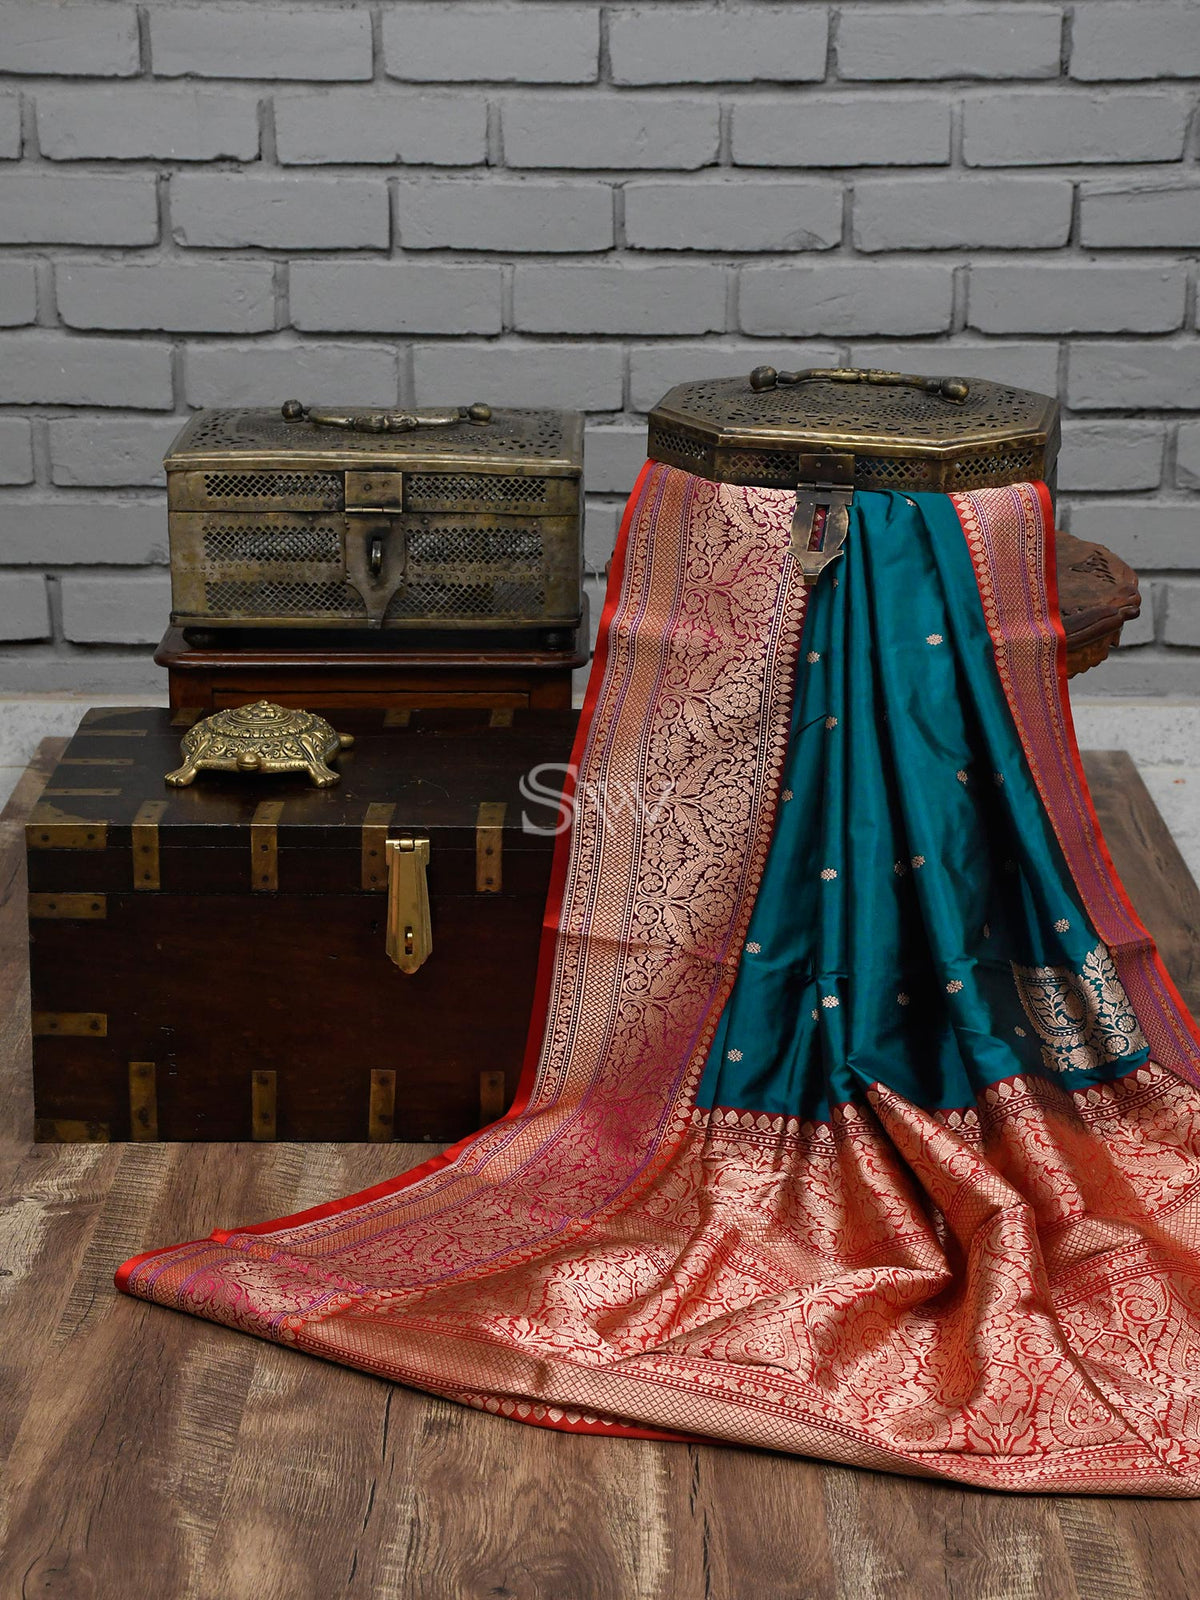 Midnight Blue Konia Booti Katan Silk Handloom Banarasi Saree - Sacred Weaves